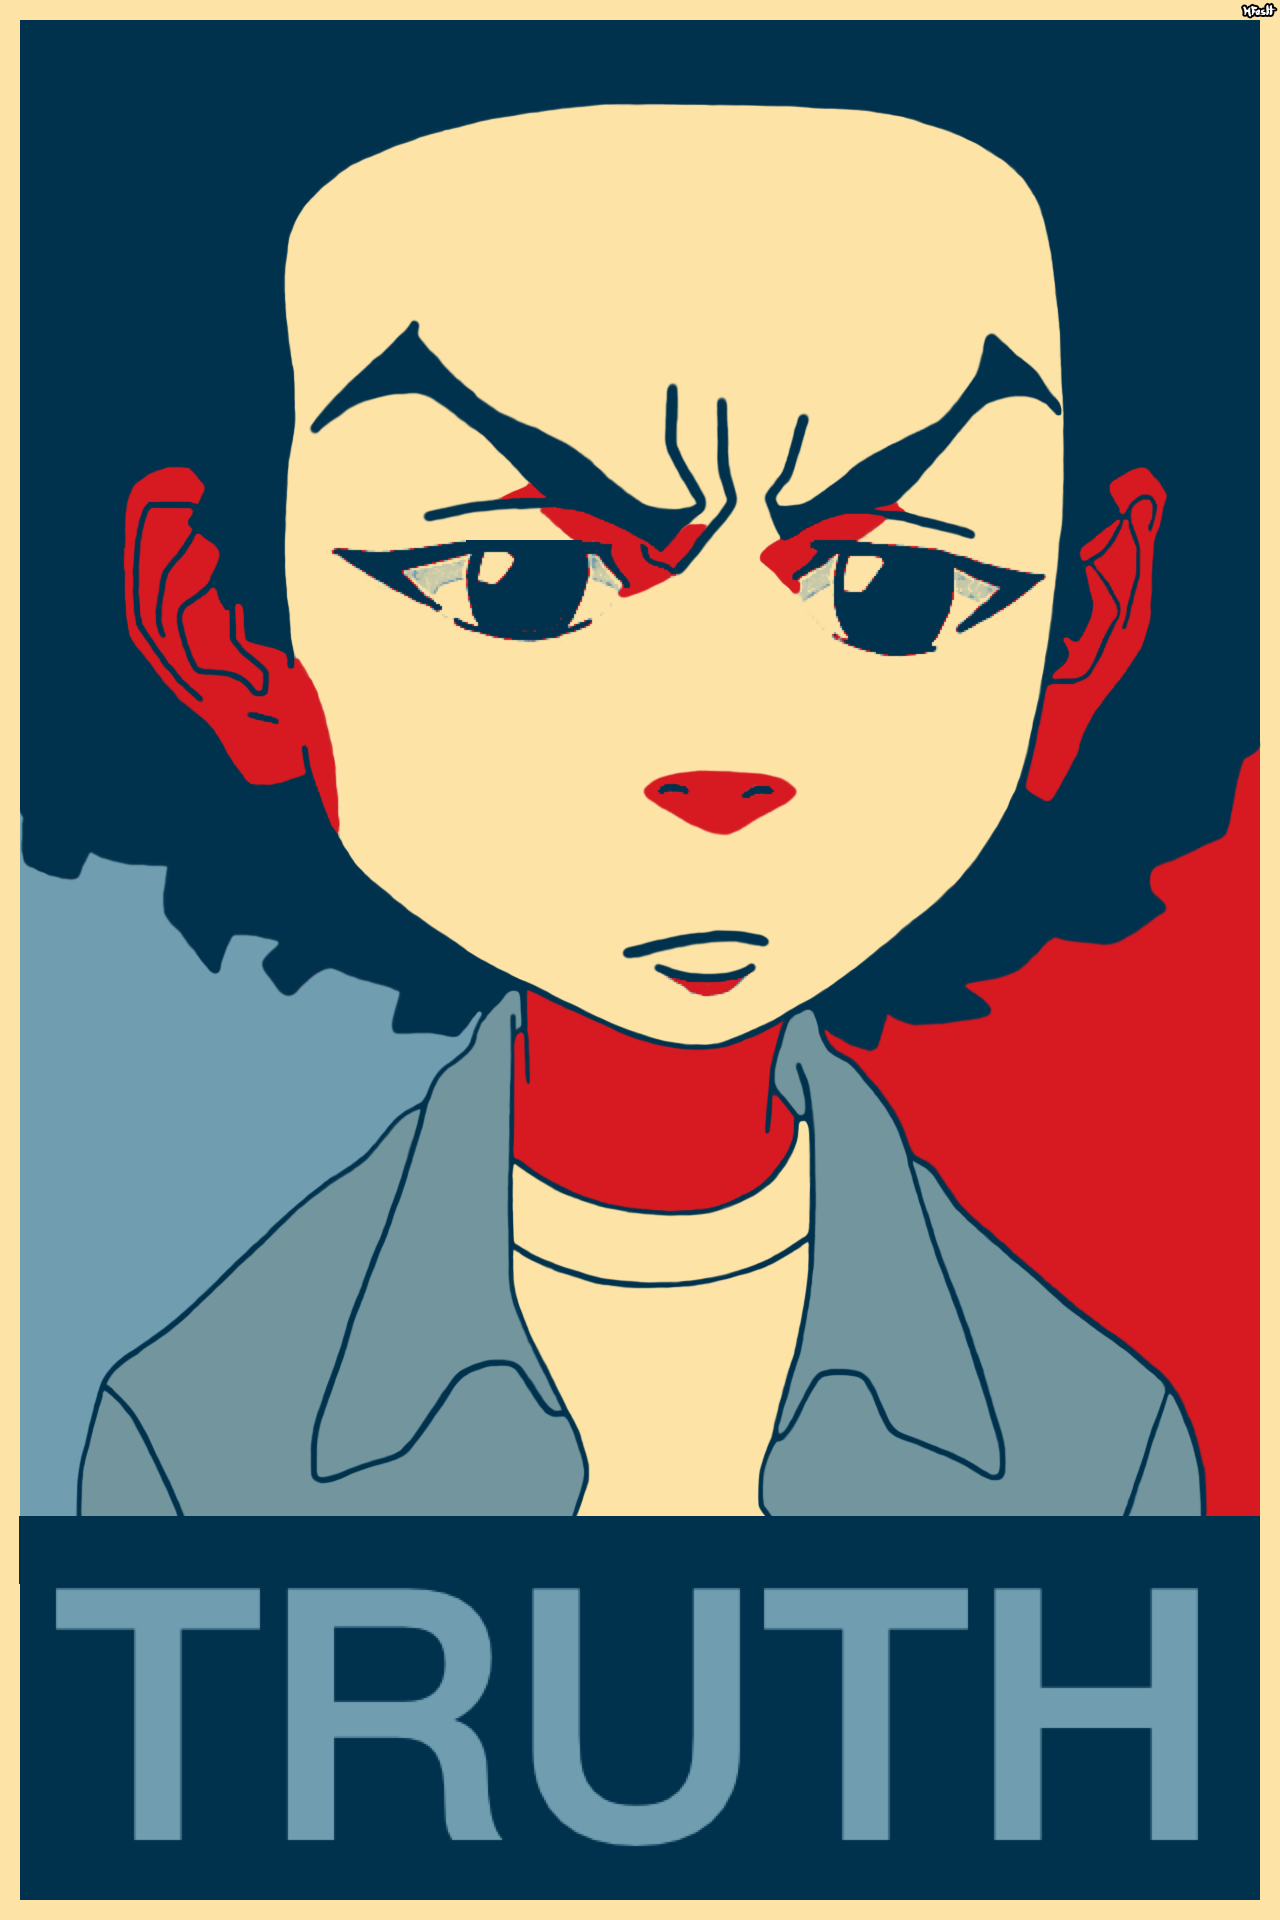 Huey Freeman Only Speaks The Truth Boondocks What People Need Is